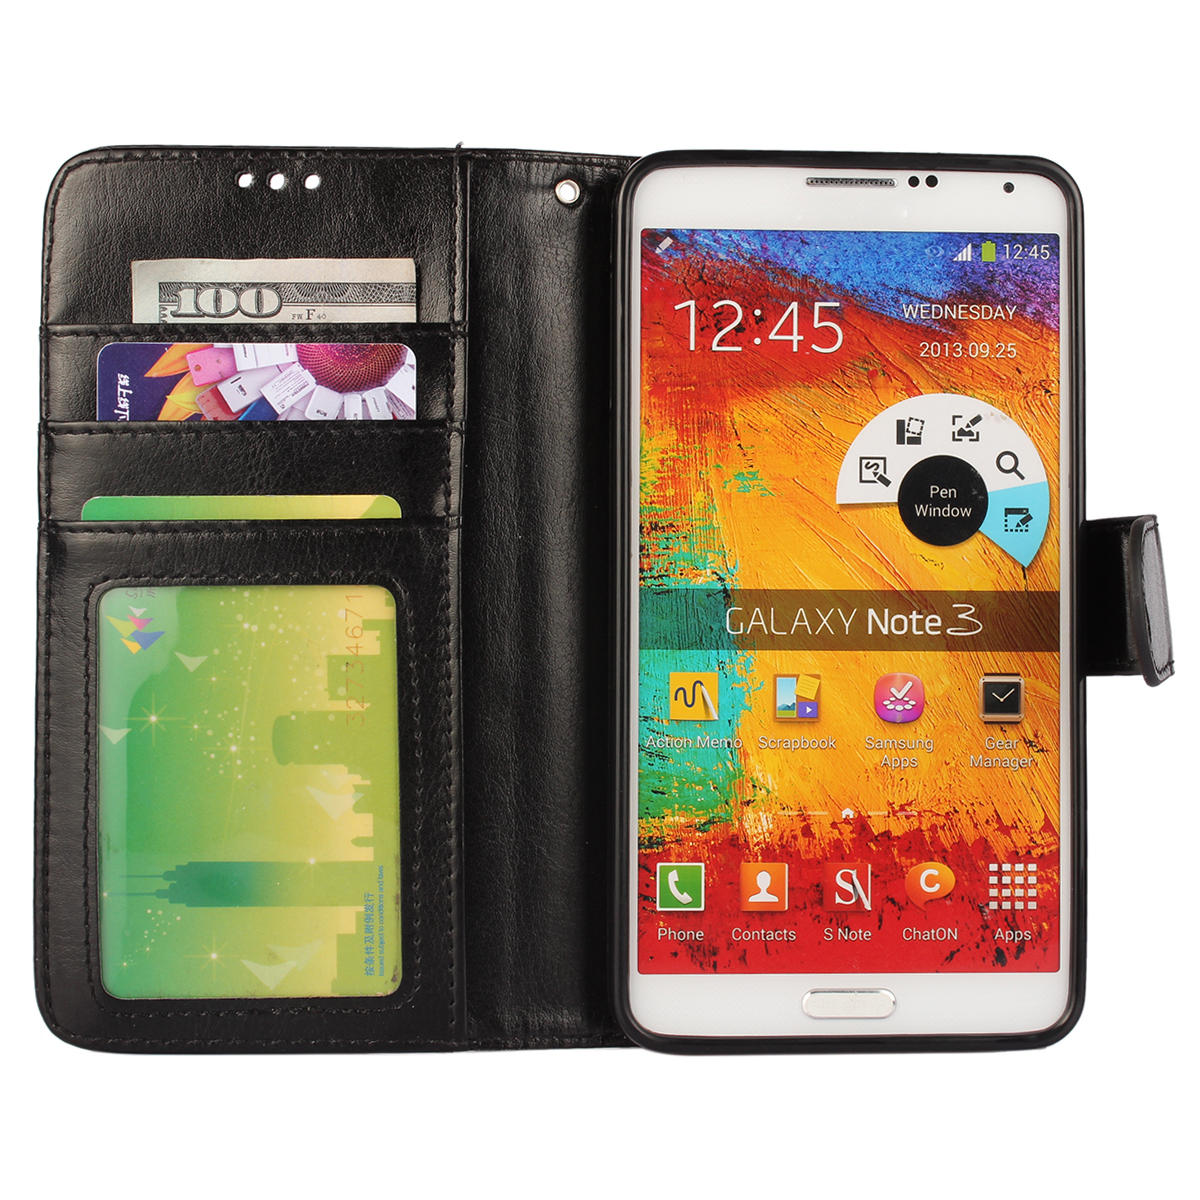 How to use scrapbook on galaxy note 3 - Note 3 Case Cover Wallet Flip Leather Soft Inner Book Purse Phone Accessories Photo Frame Shell For Samsung Galaxy Note 3 Cover